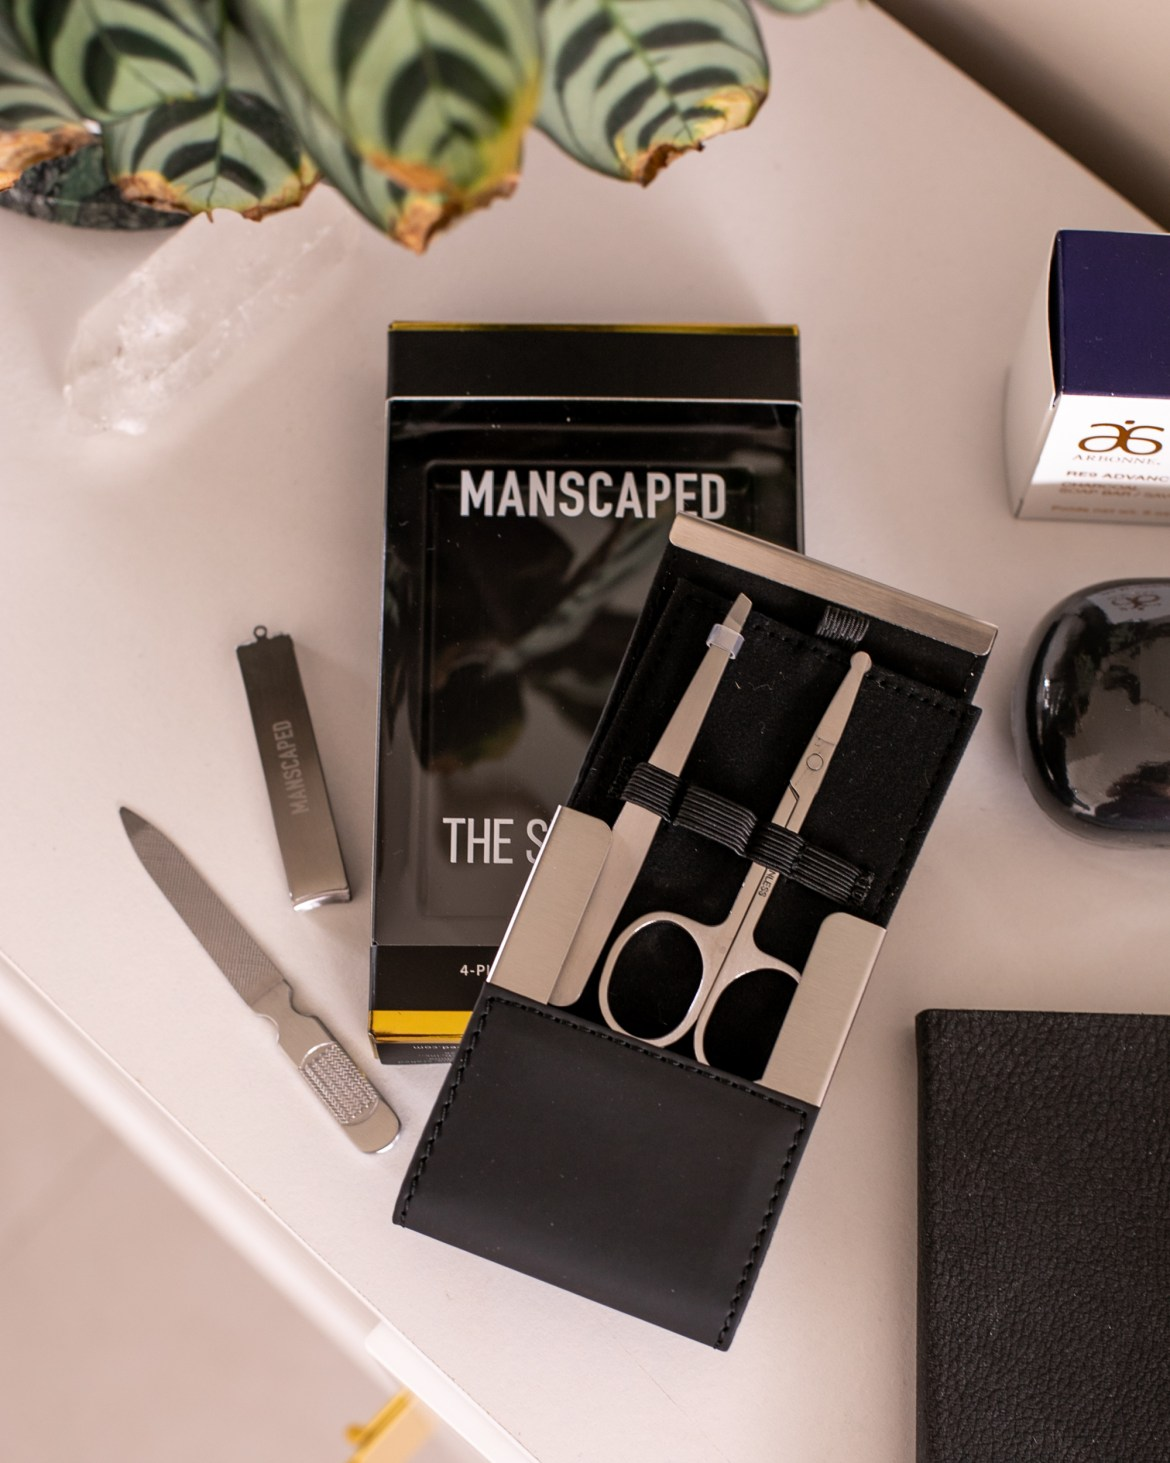 The Shears 2.0 by MANSCAPED™ gift idea for Christmas 2020